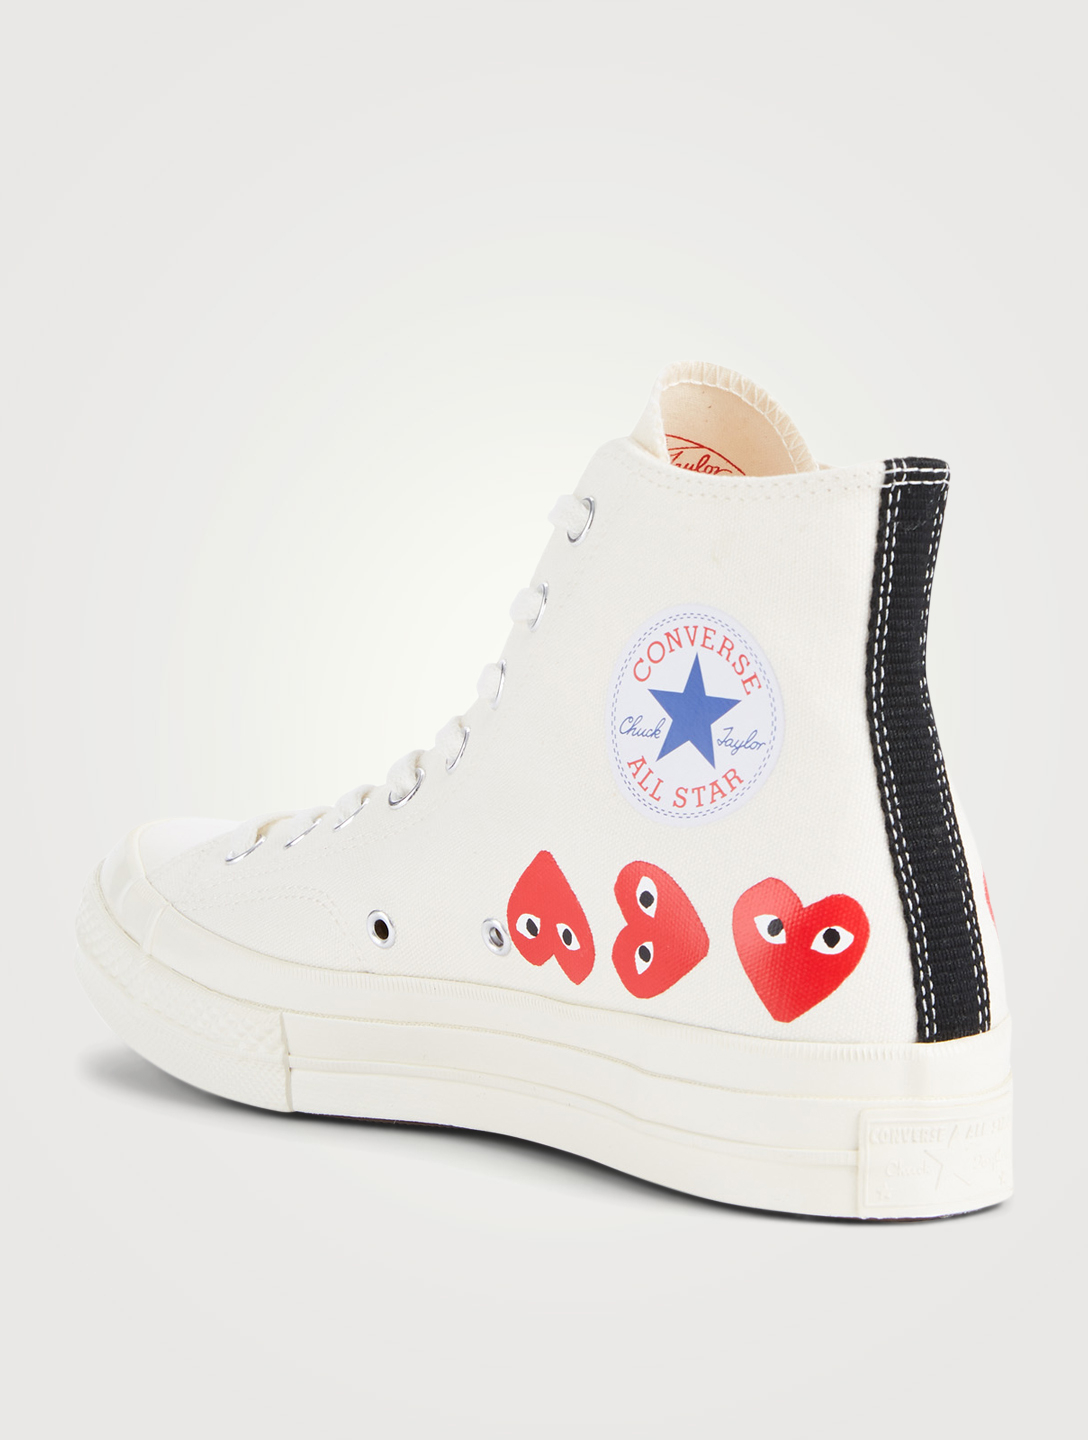 COMME DES GARÇONS PLAY CONVERSE X CDG PLAY Chuck Taylor '70 High-Top Sneakers Men's White